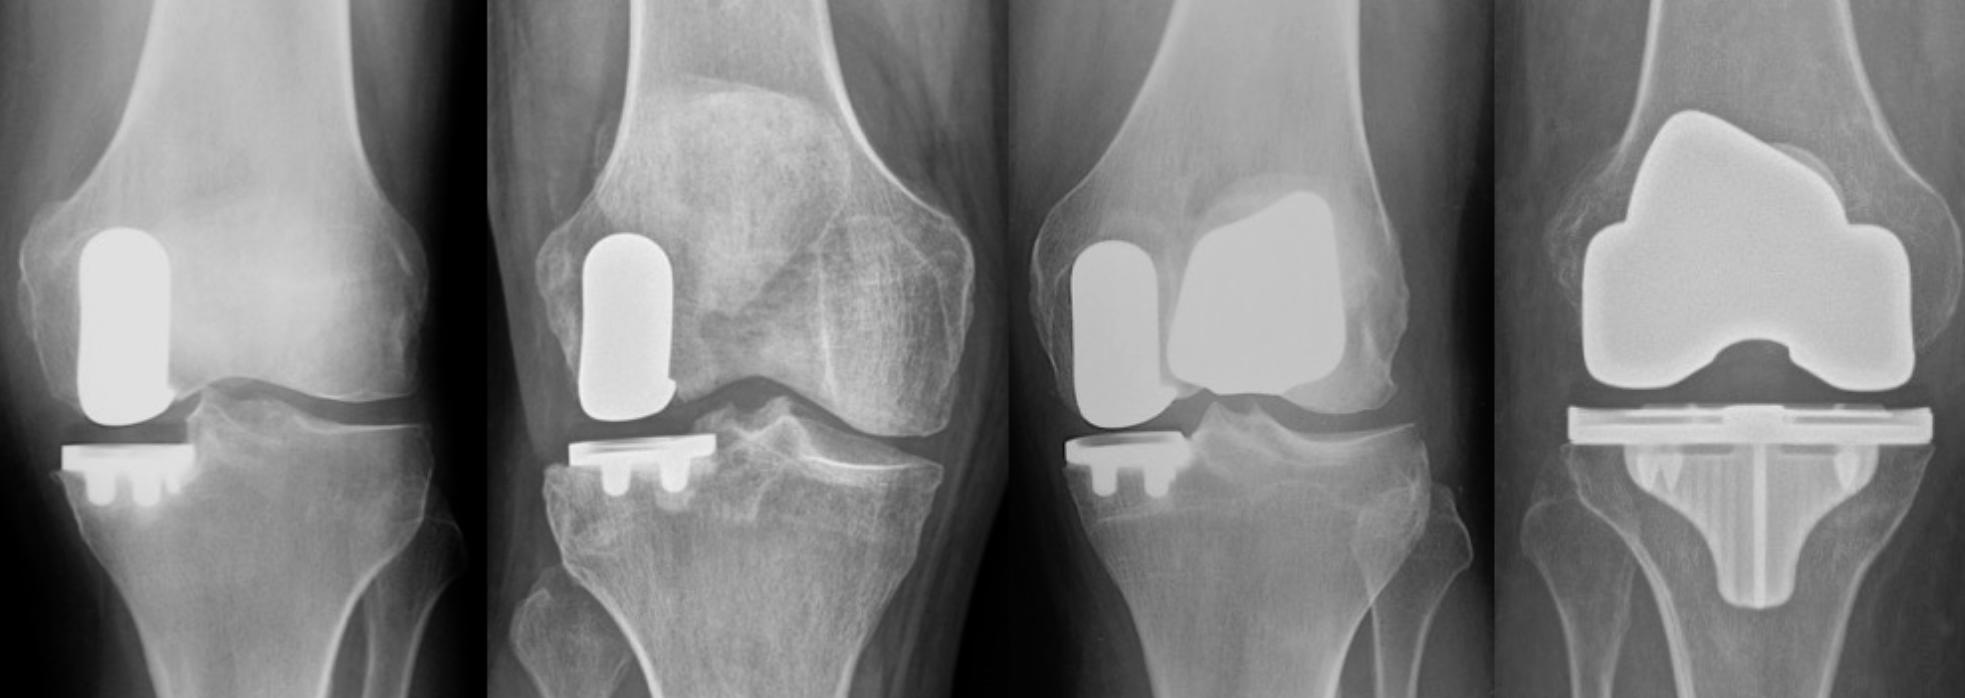 X-rays of a knee joint after robotic knee replacement surgery